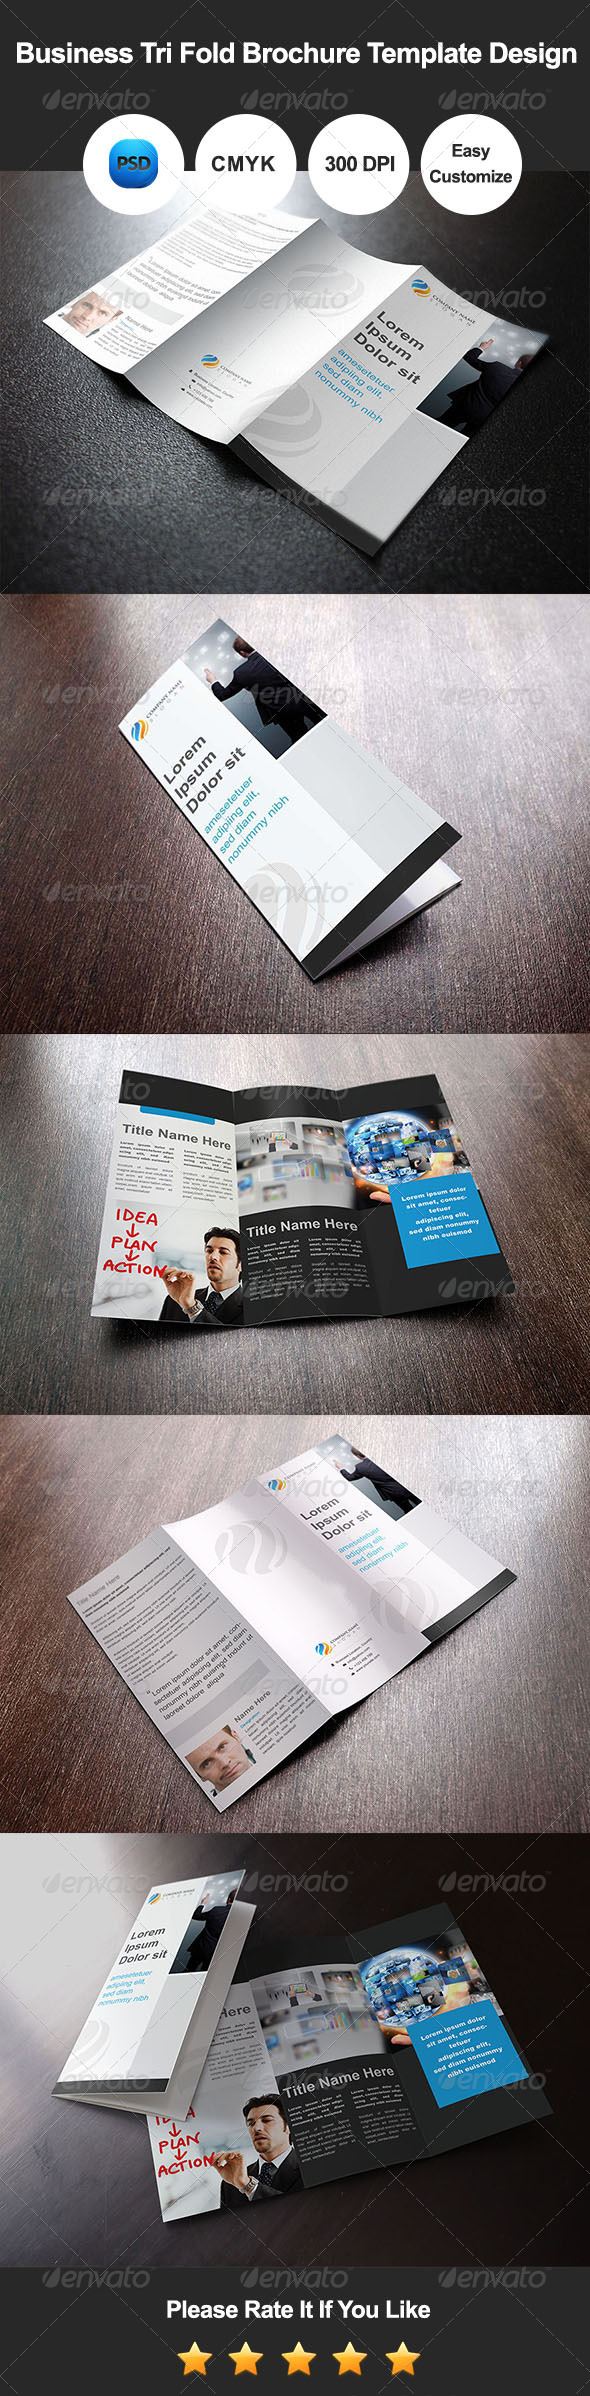 GraphicRiver Business Tri Fold Brochure Template Design 7955456